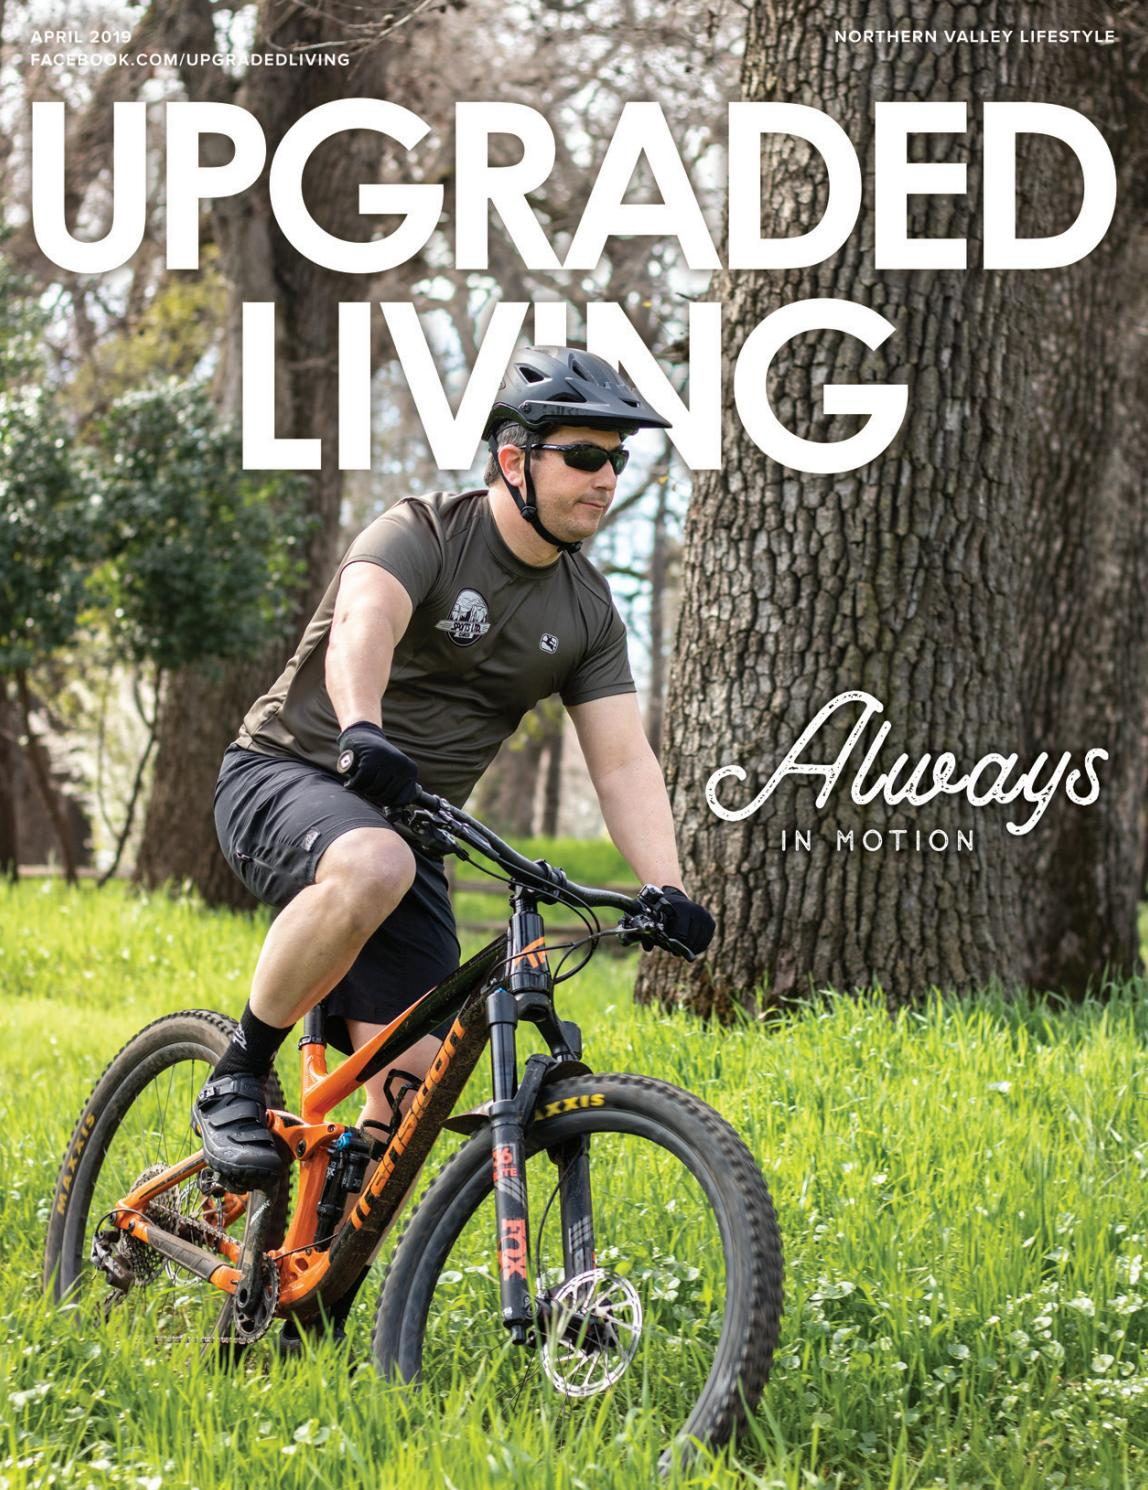 c152526d5 Upgraded Living April 2019 by Upgraded Living - issuu